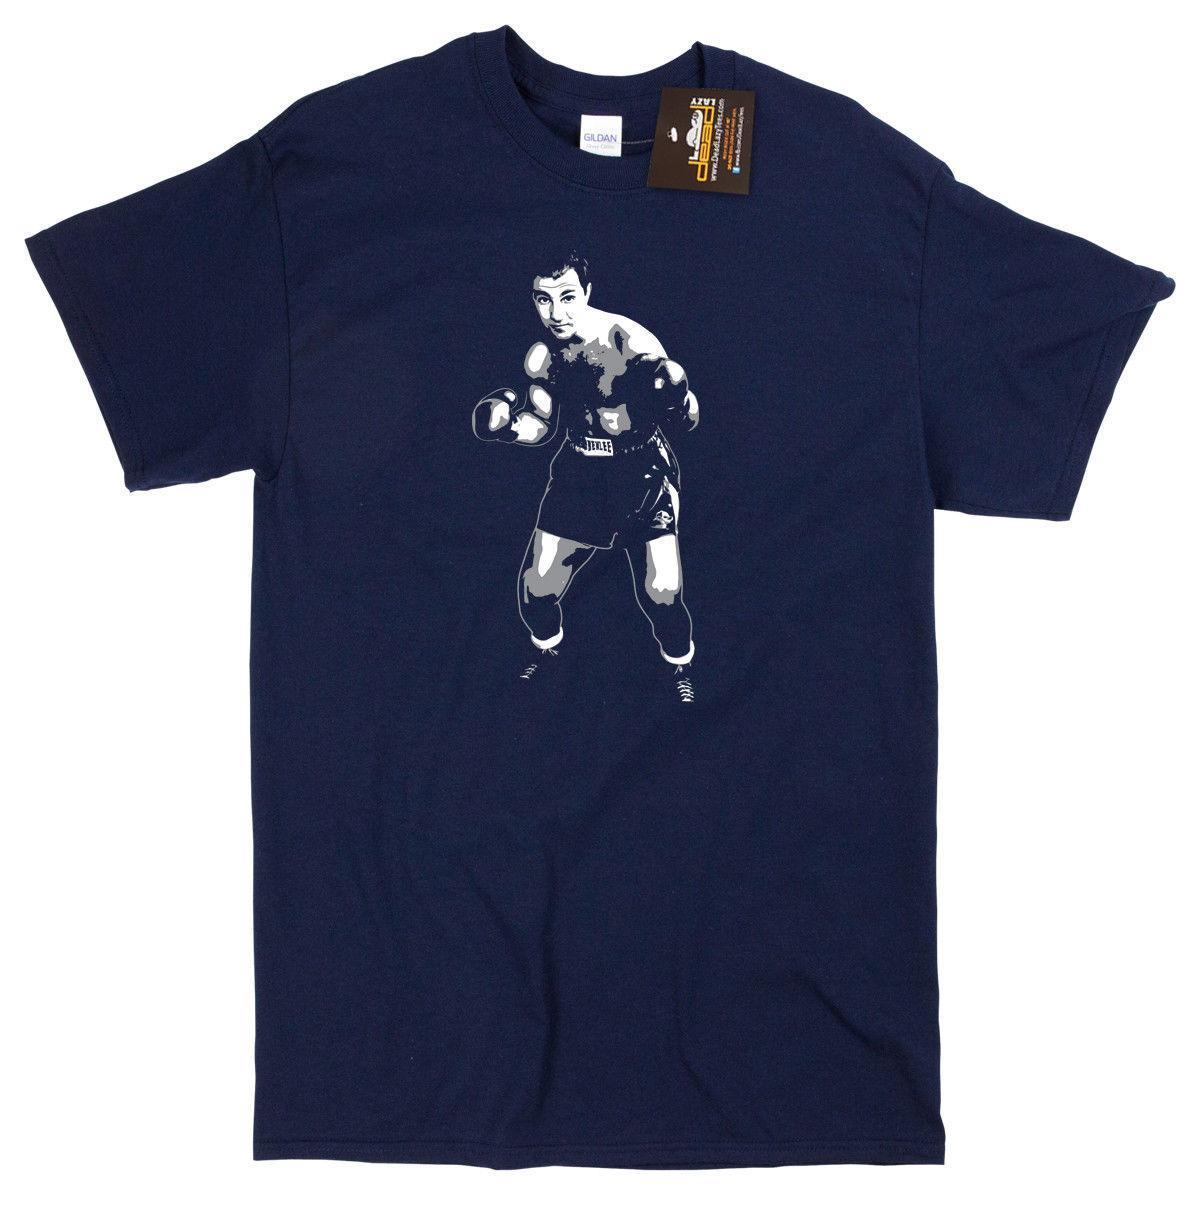 5b9368f64 Rocky Marciano Heavyweight Boxing T Shirt Fight Legend Sports Star NEW  Shirts With Design Unique T Shirts For Sale From Amesion2504, $12.08|  DHgate.Com